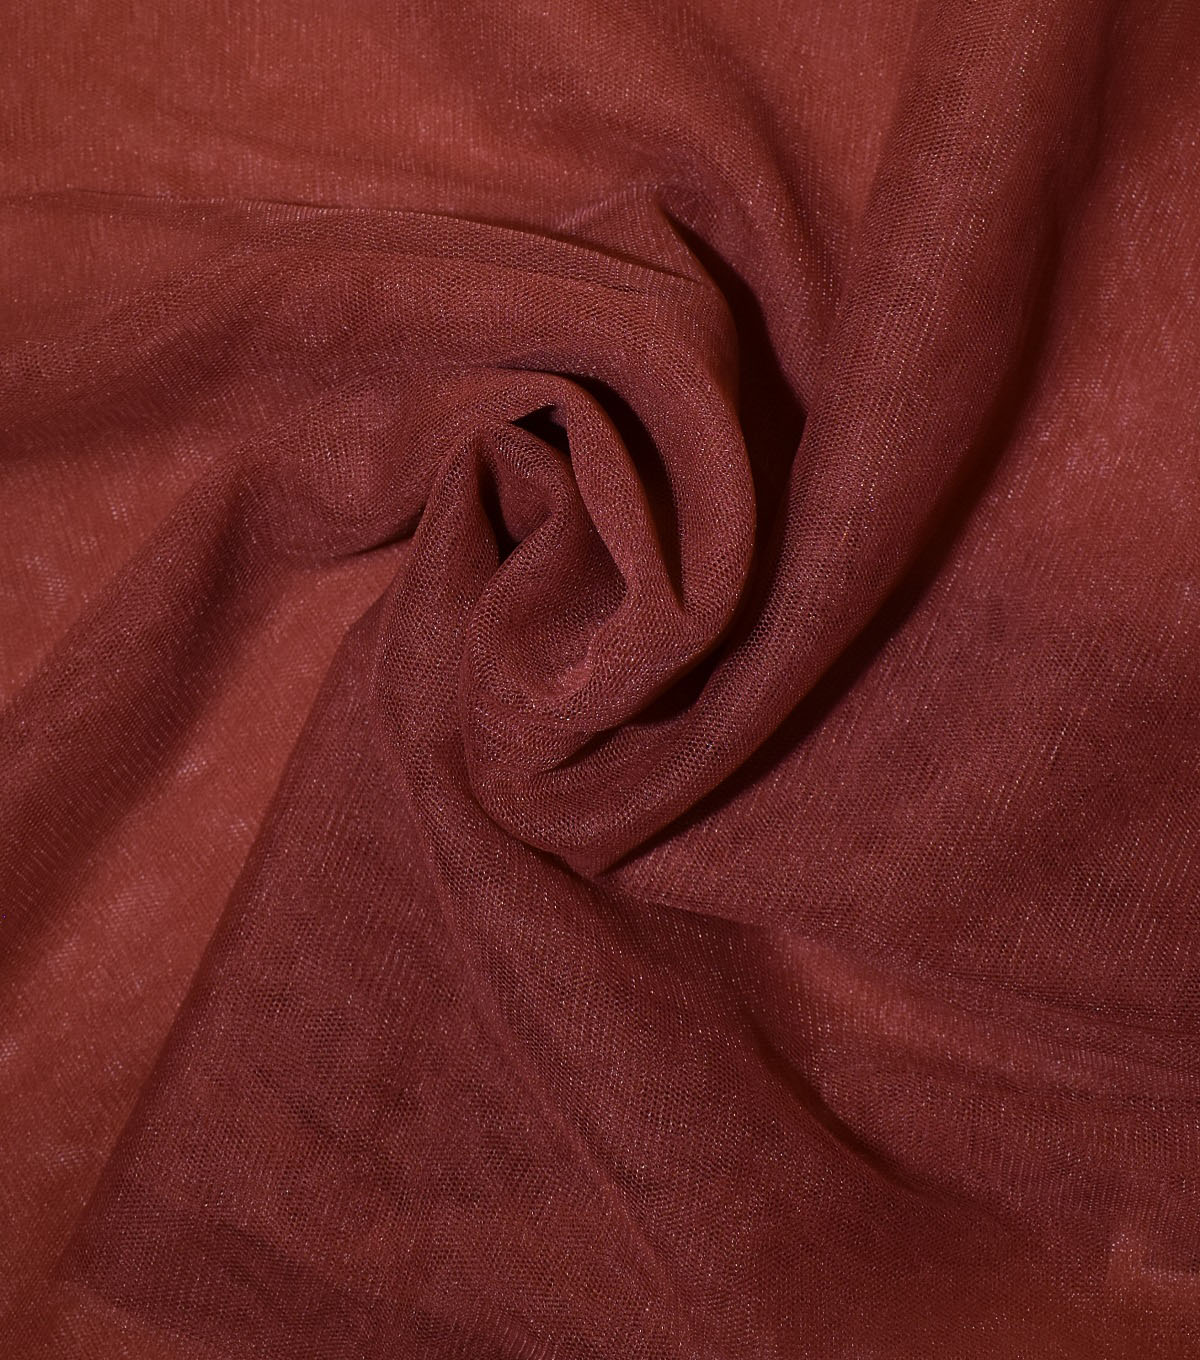 Casa Collection Solid Tulle Fabric 57\u0027\u0027, Chili Oil